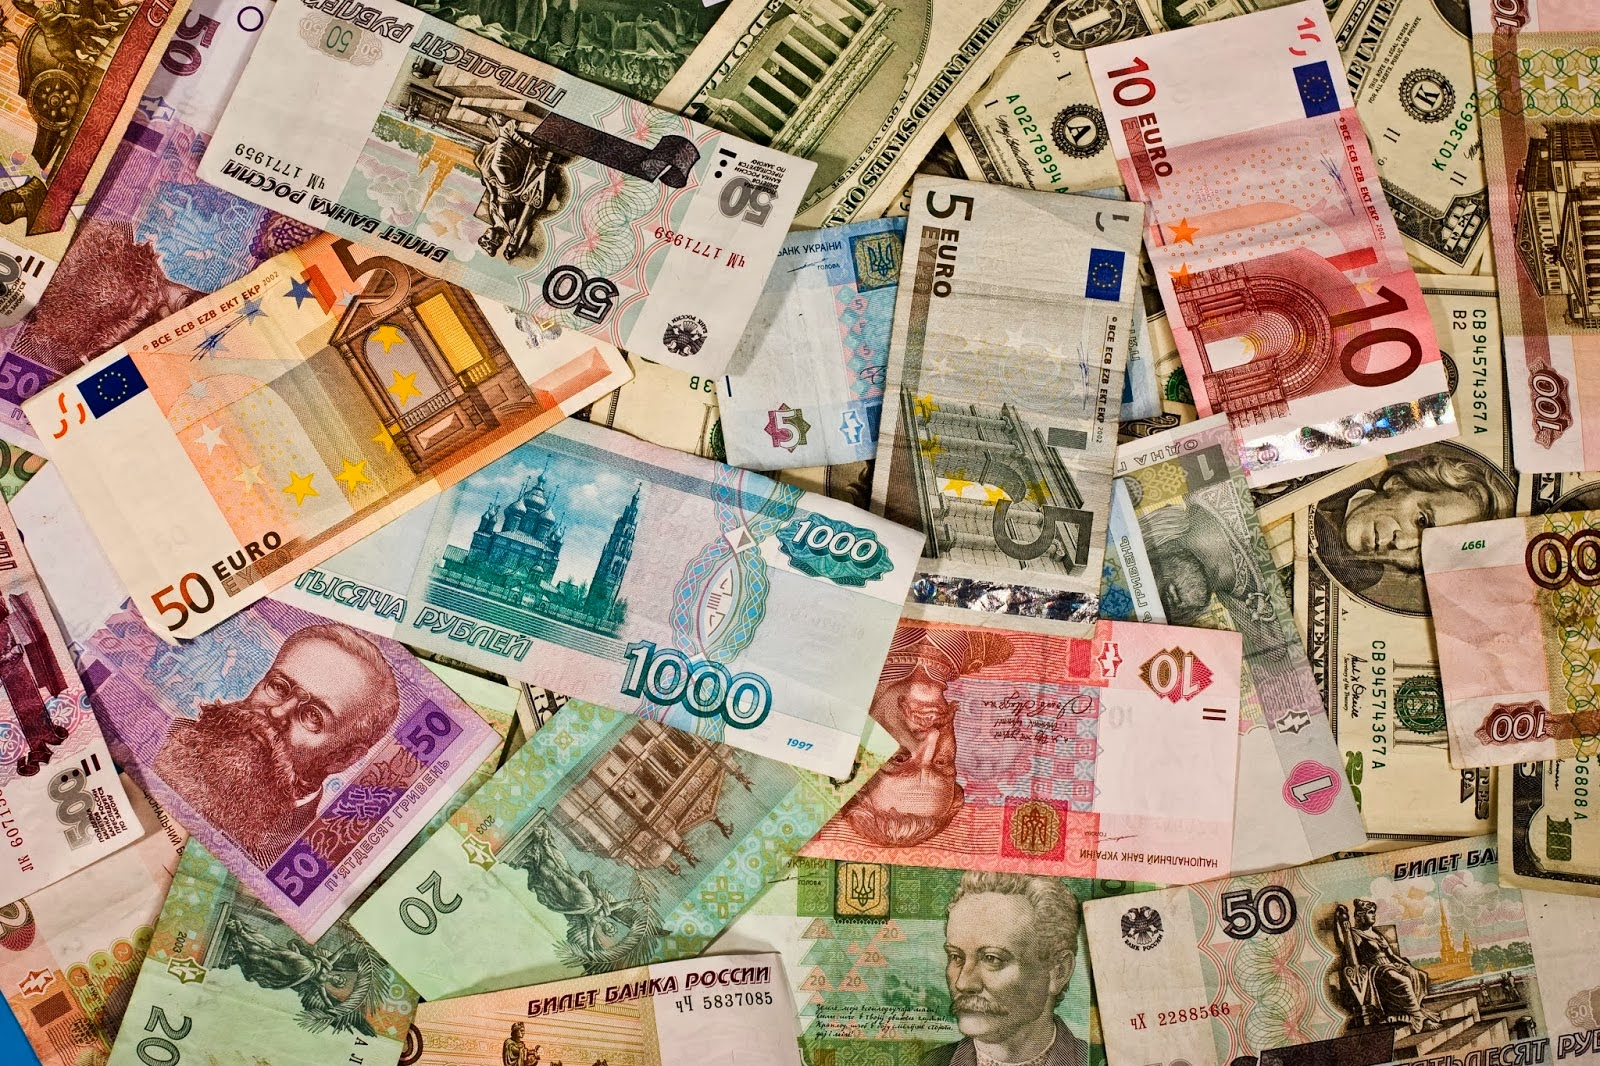 Nepal Rastra Bank Exchange Rate Provides Daily For Foreign Currency If You Are Planing To Send Or Receive Money From Other Country